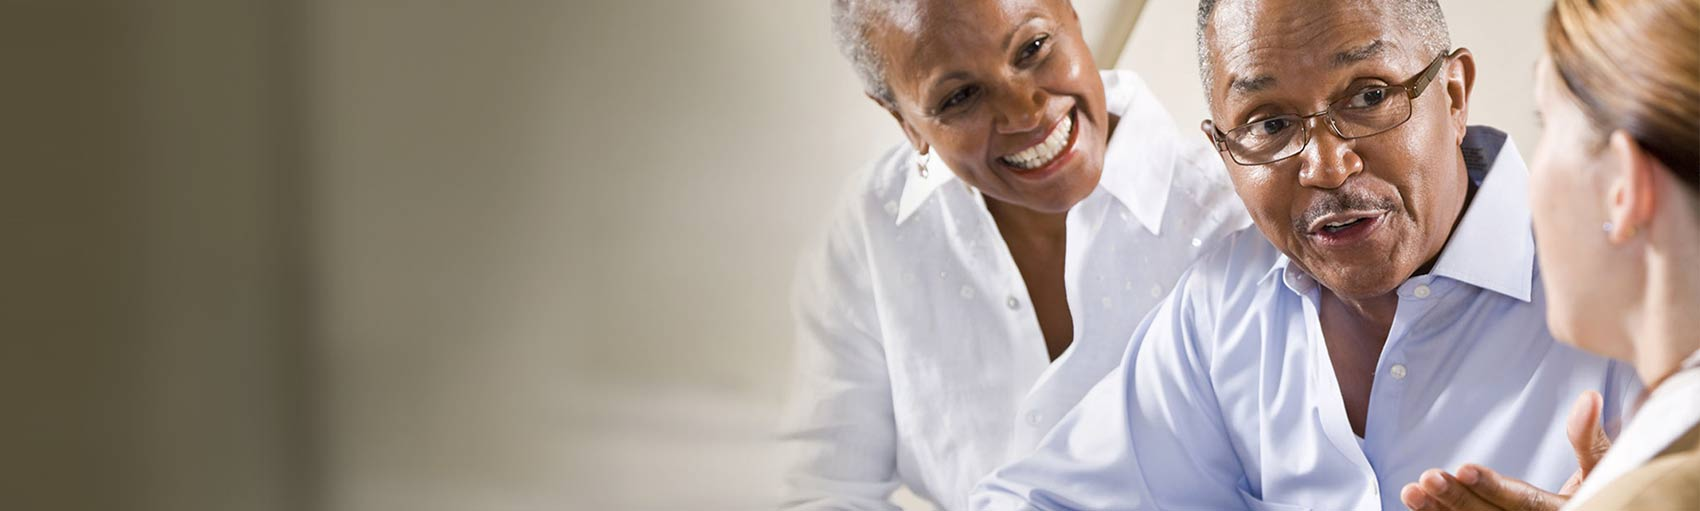 Start here to find the right senior care.